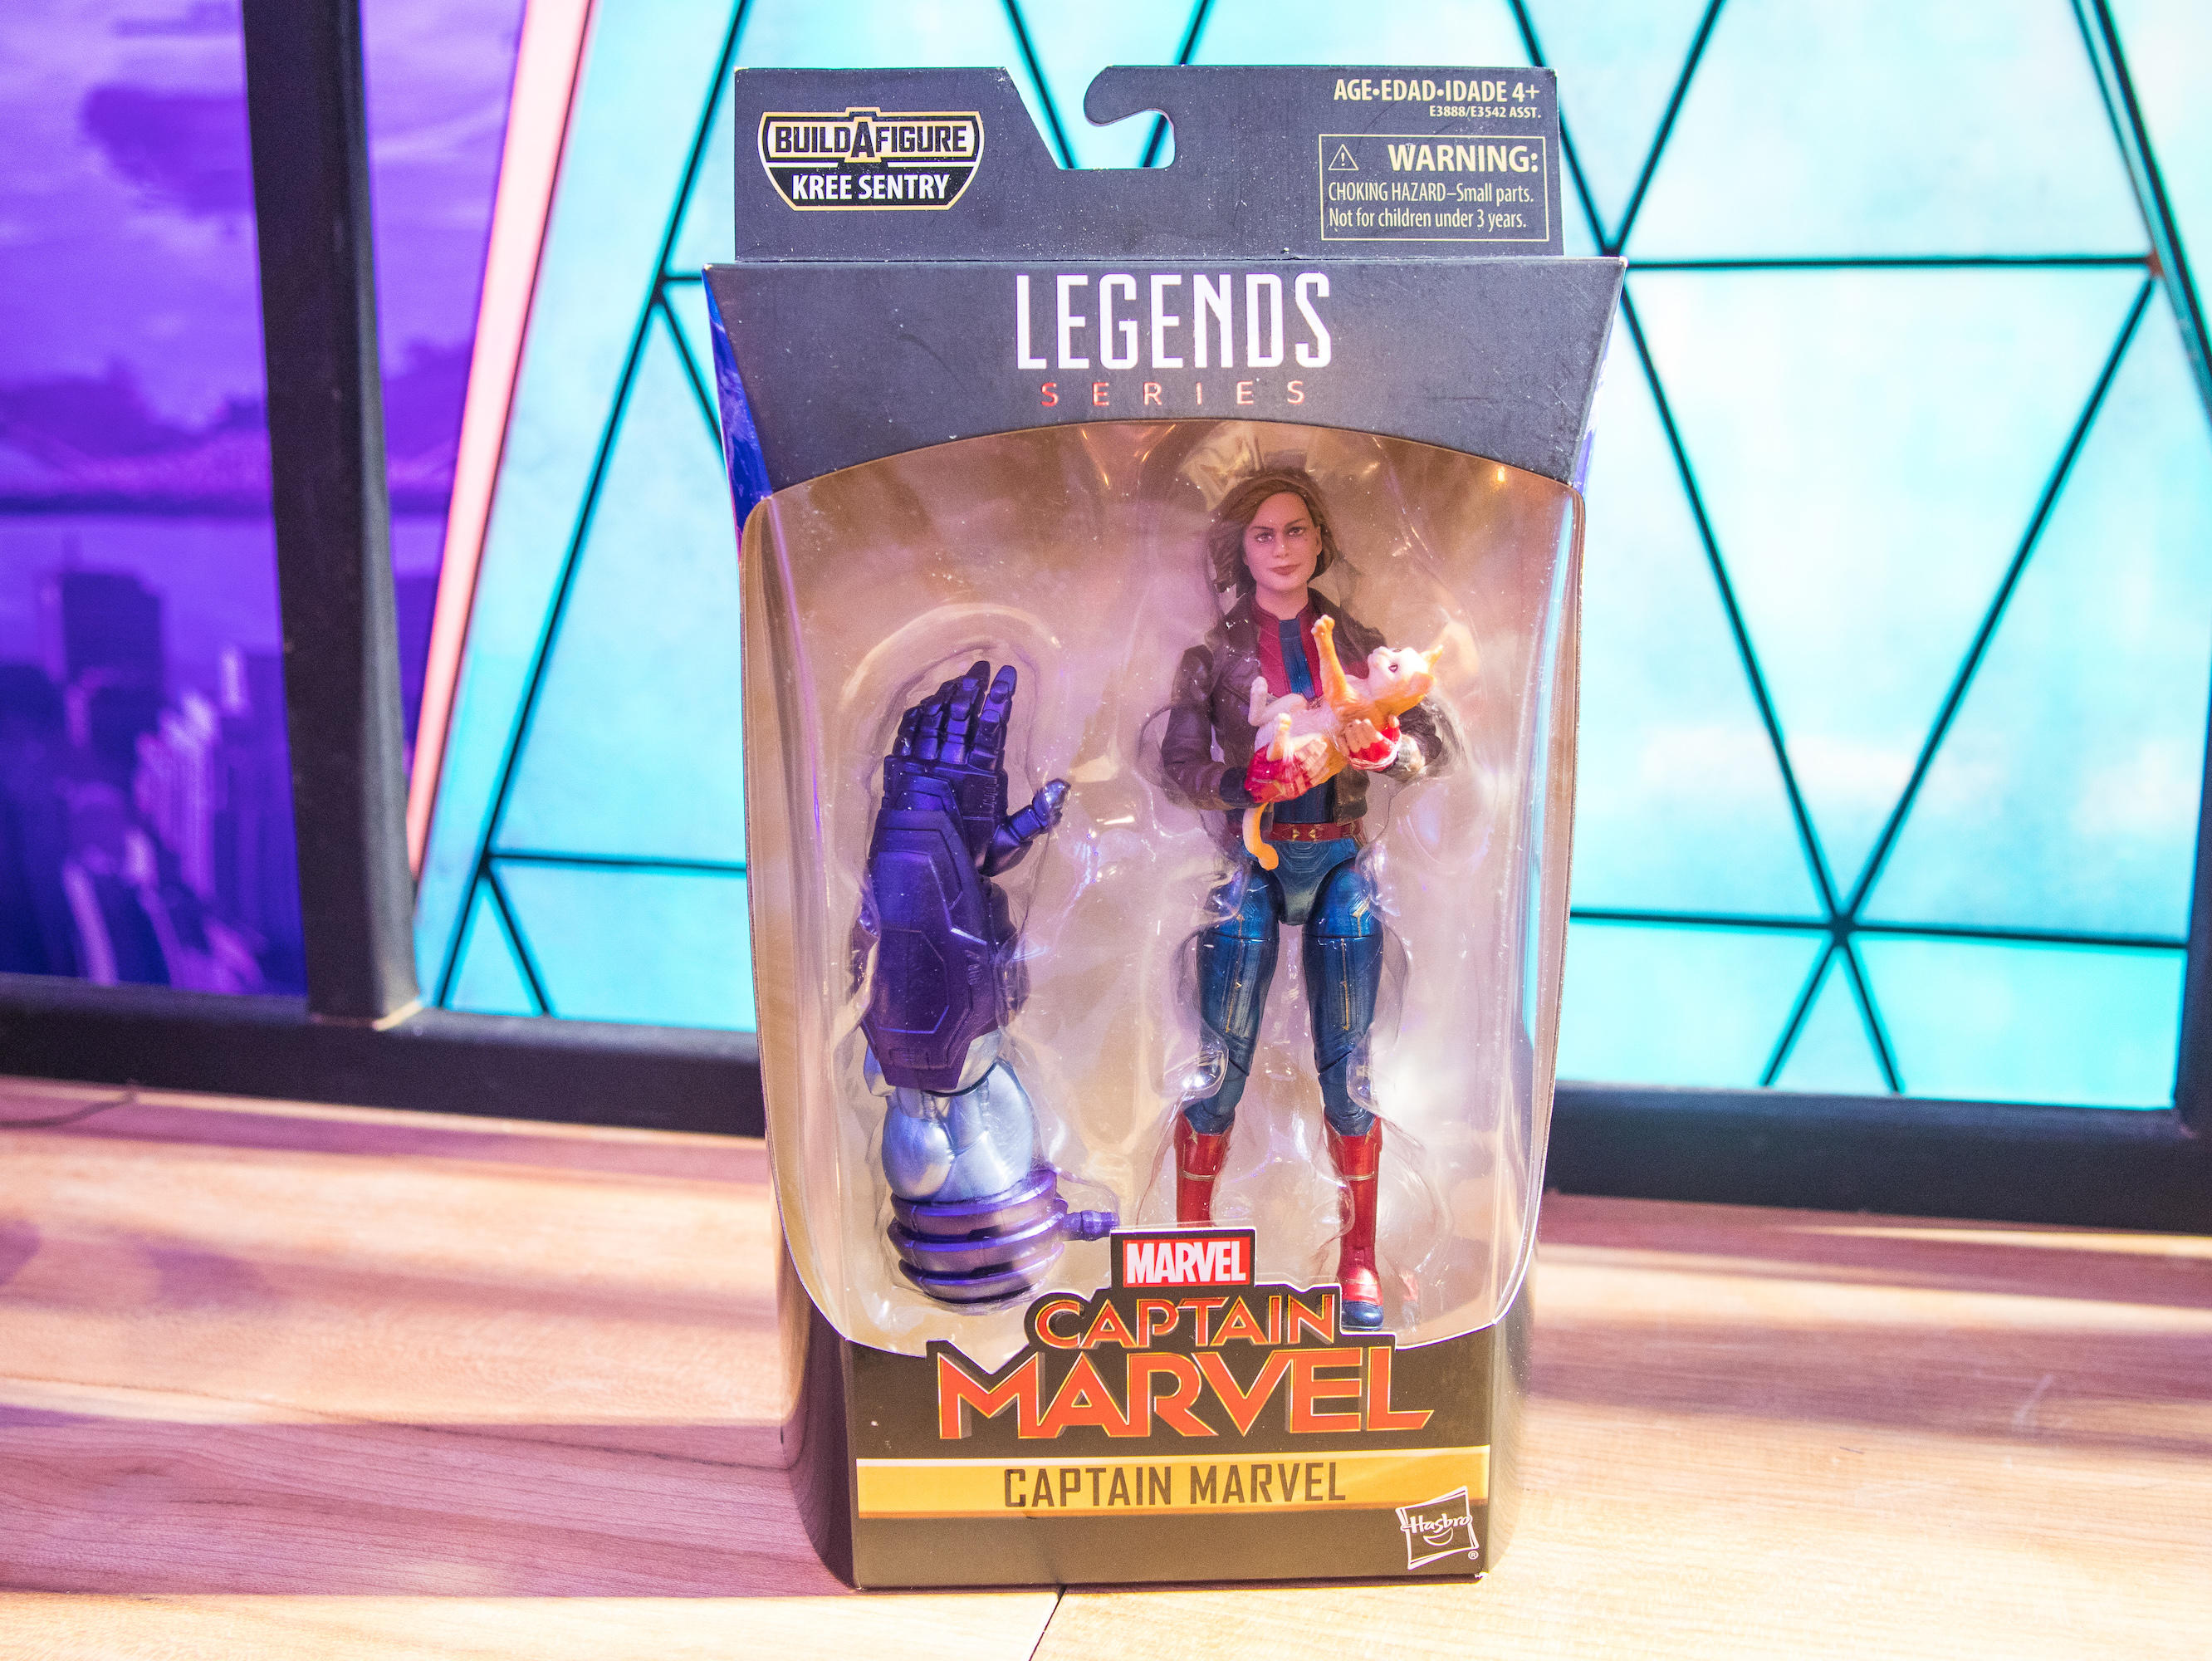 MARVEL LEGENDS CAPTAIN MARVEL IN BOMBER JACKET FIGURE